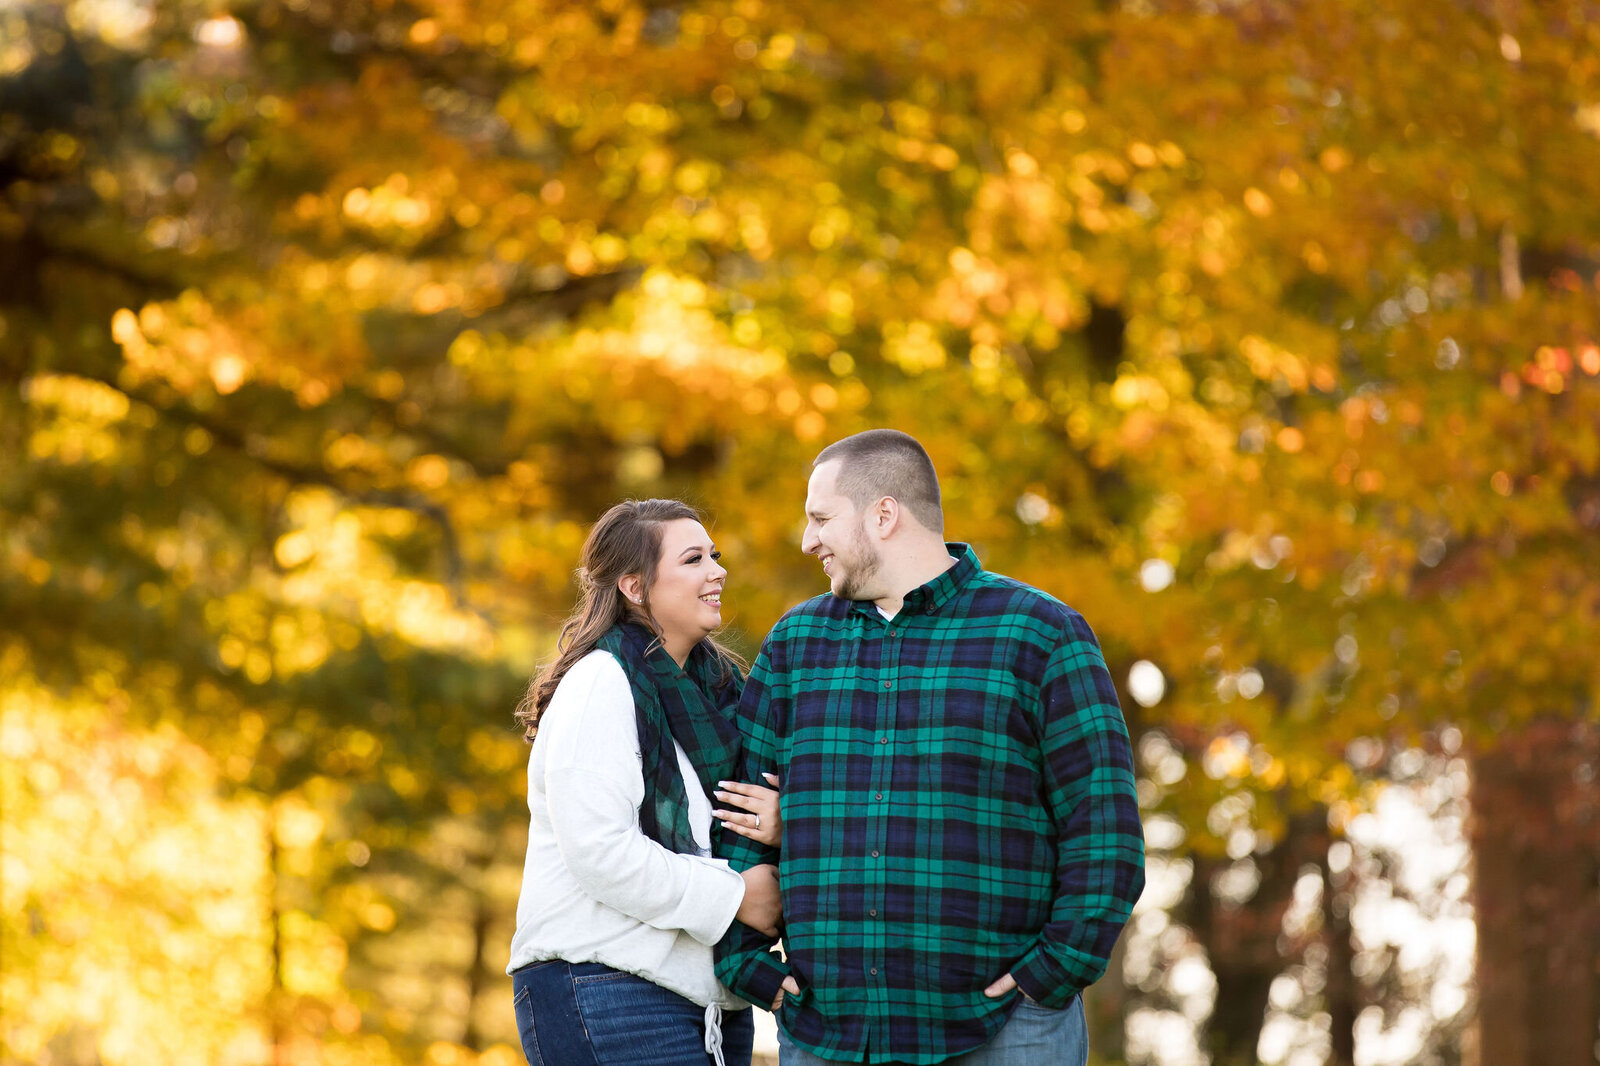 HaleyJesse-Engagement-TopsmeadStateForest-45